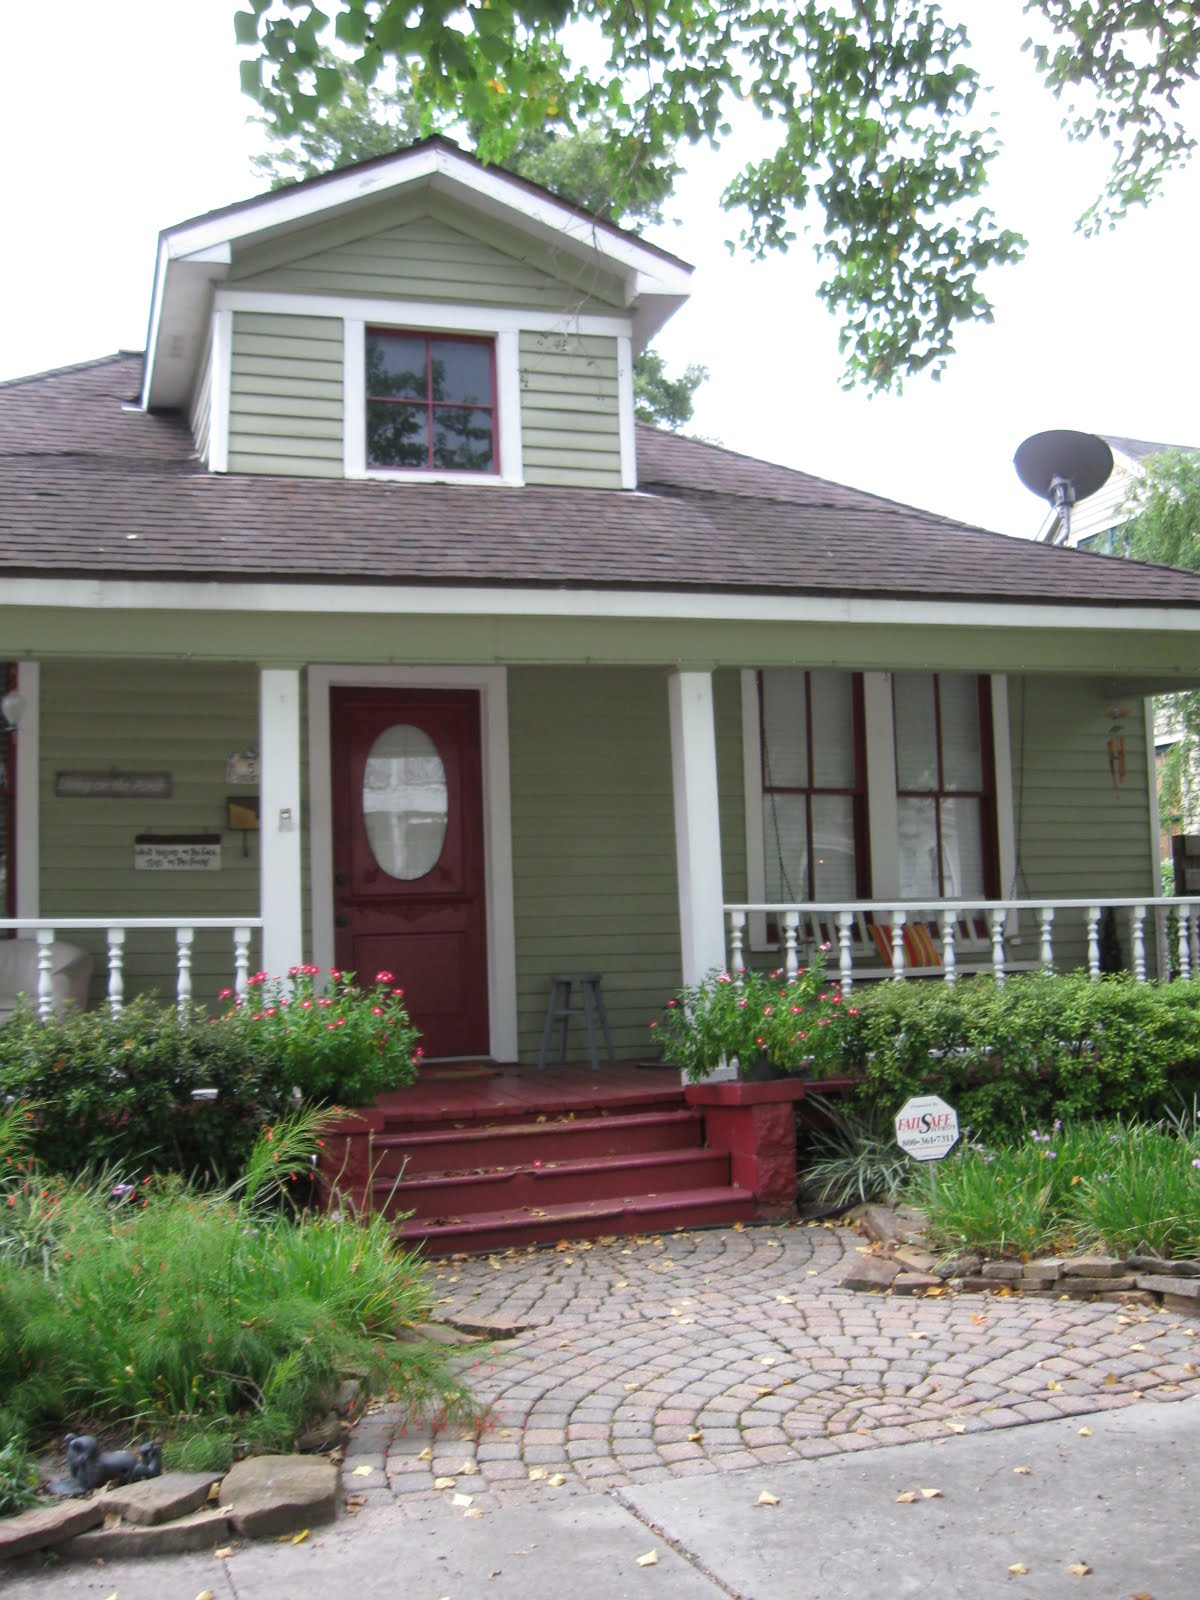 The other houston 1930 front porch bungalow for Porch designs for bungalows uk